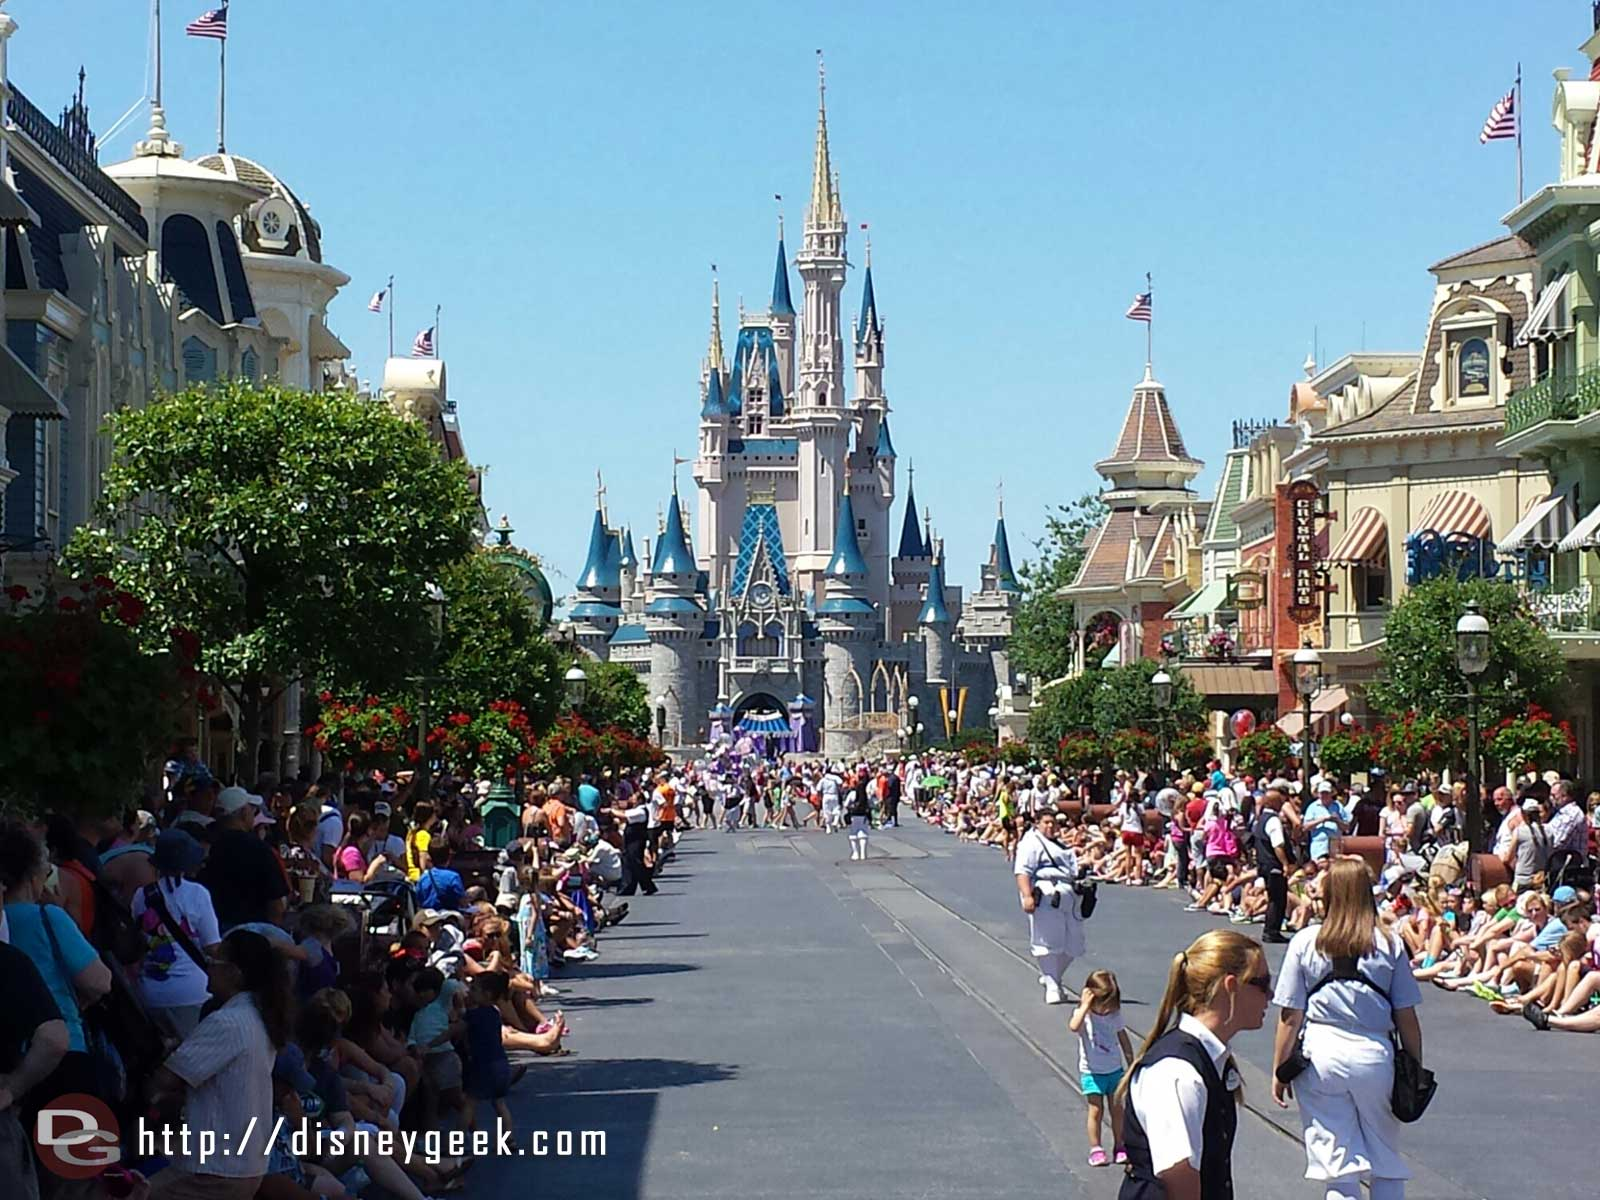 Main Street USA ready for Festival of Fantasy parade #WDW